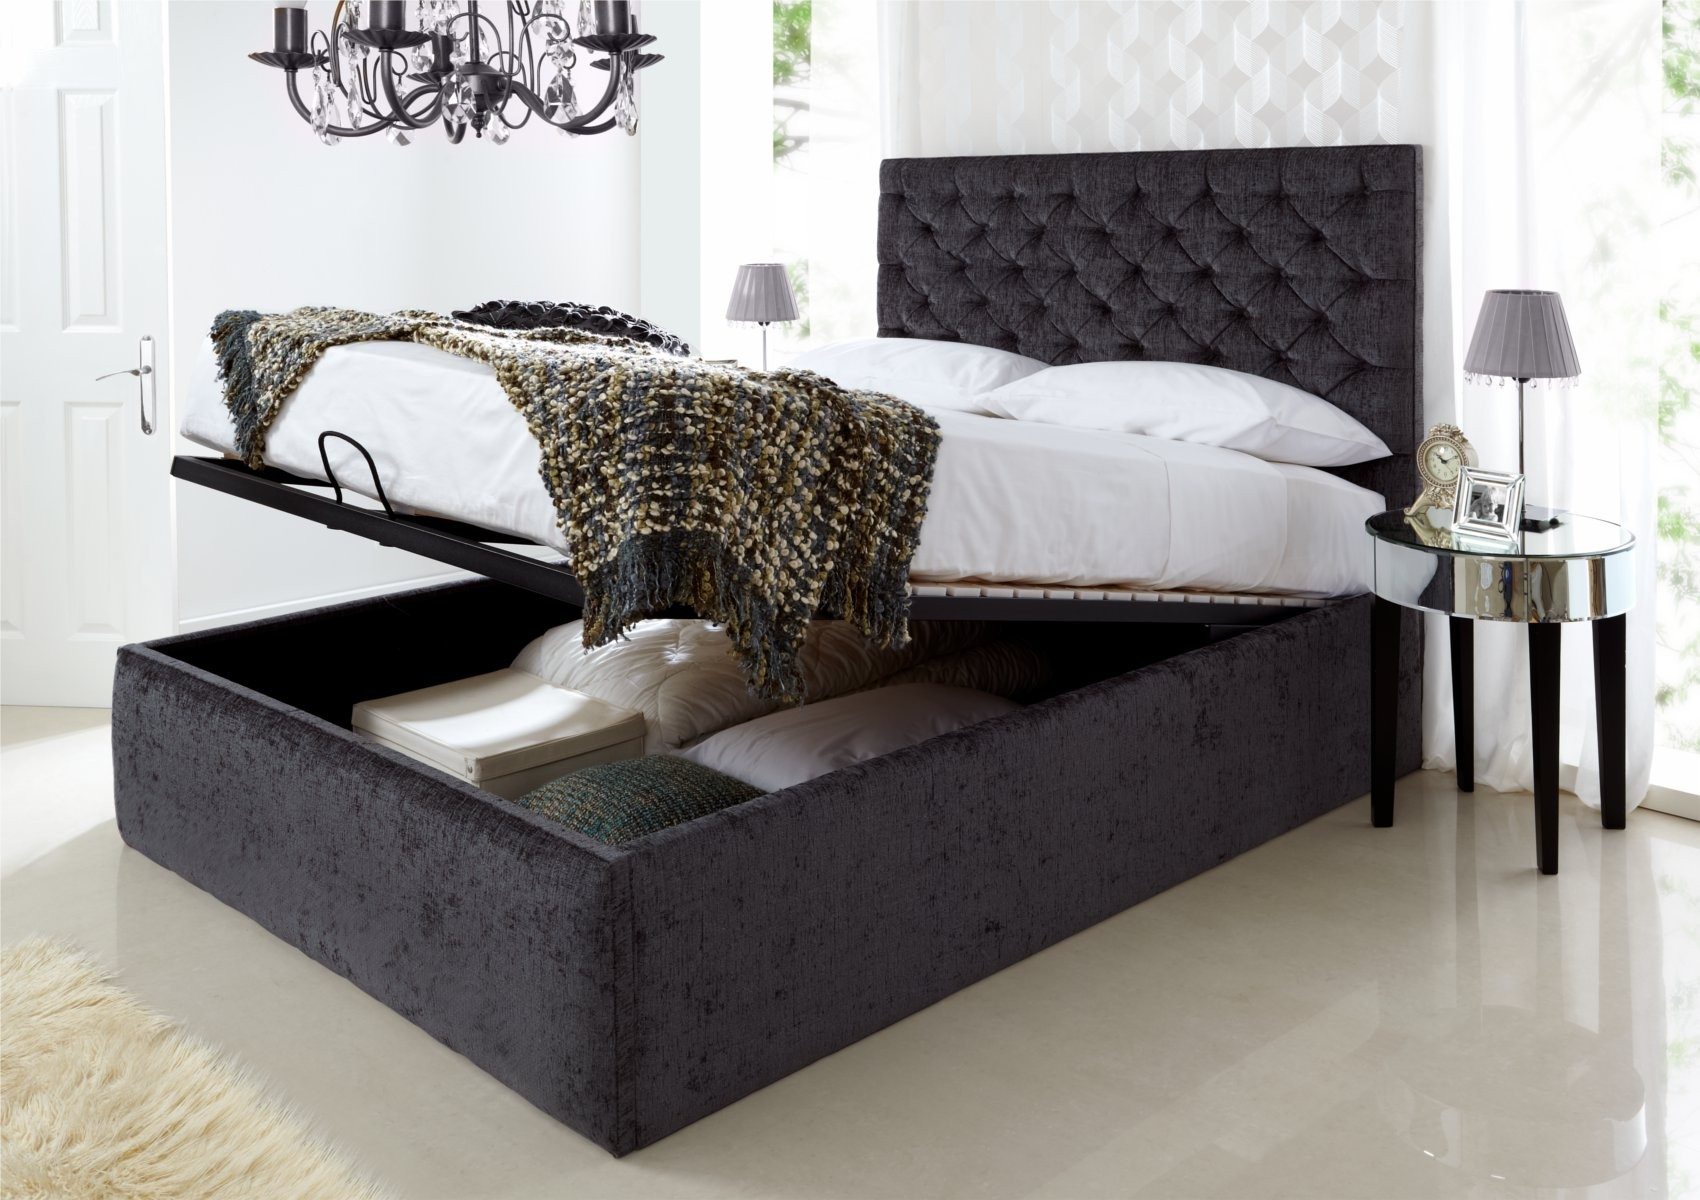 Storage beds nyc inspiration homesfeed - Bed desine double bed ...